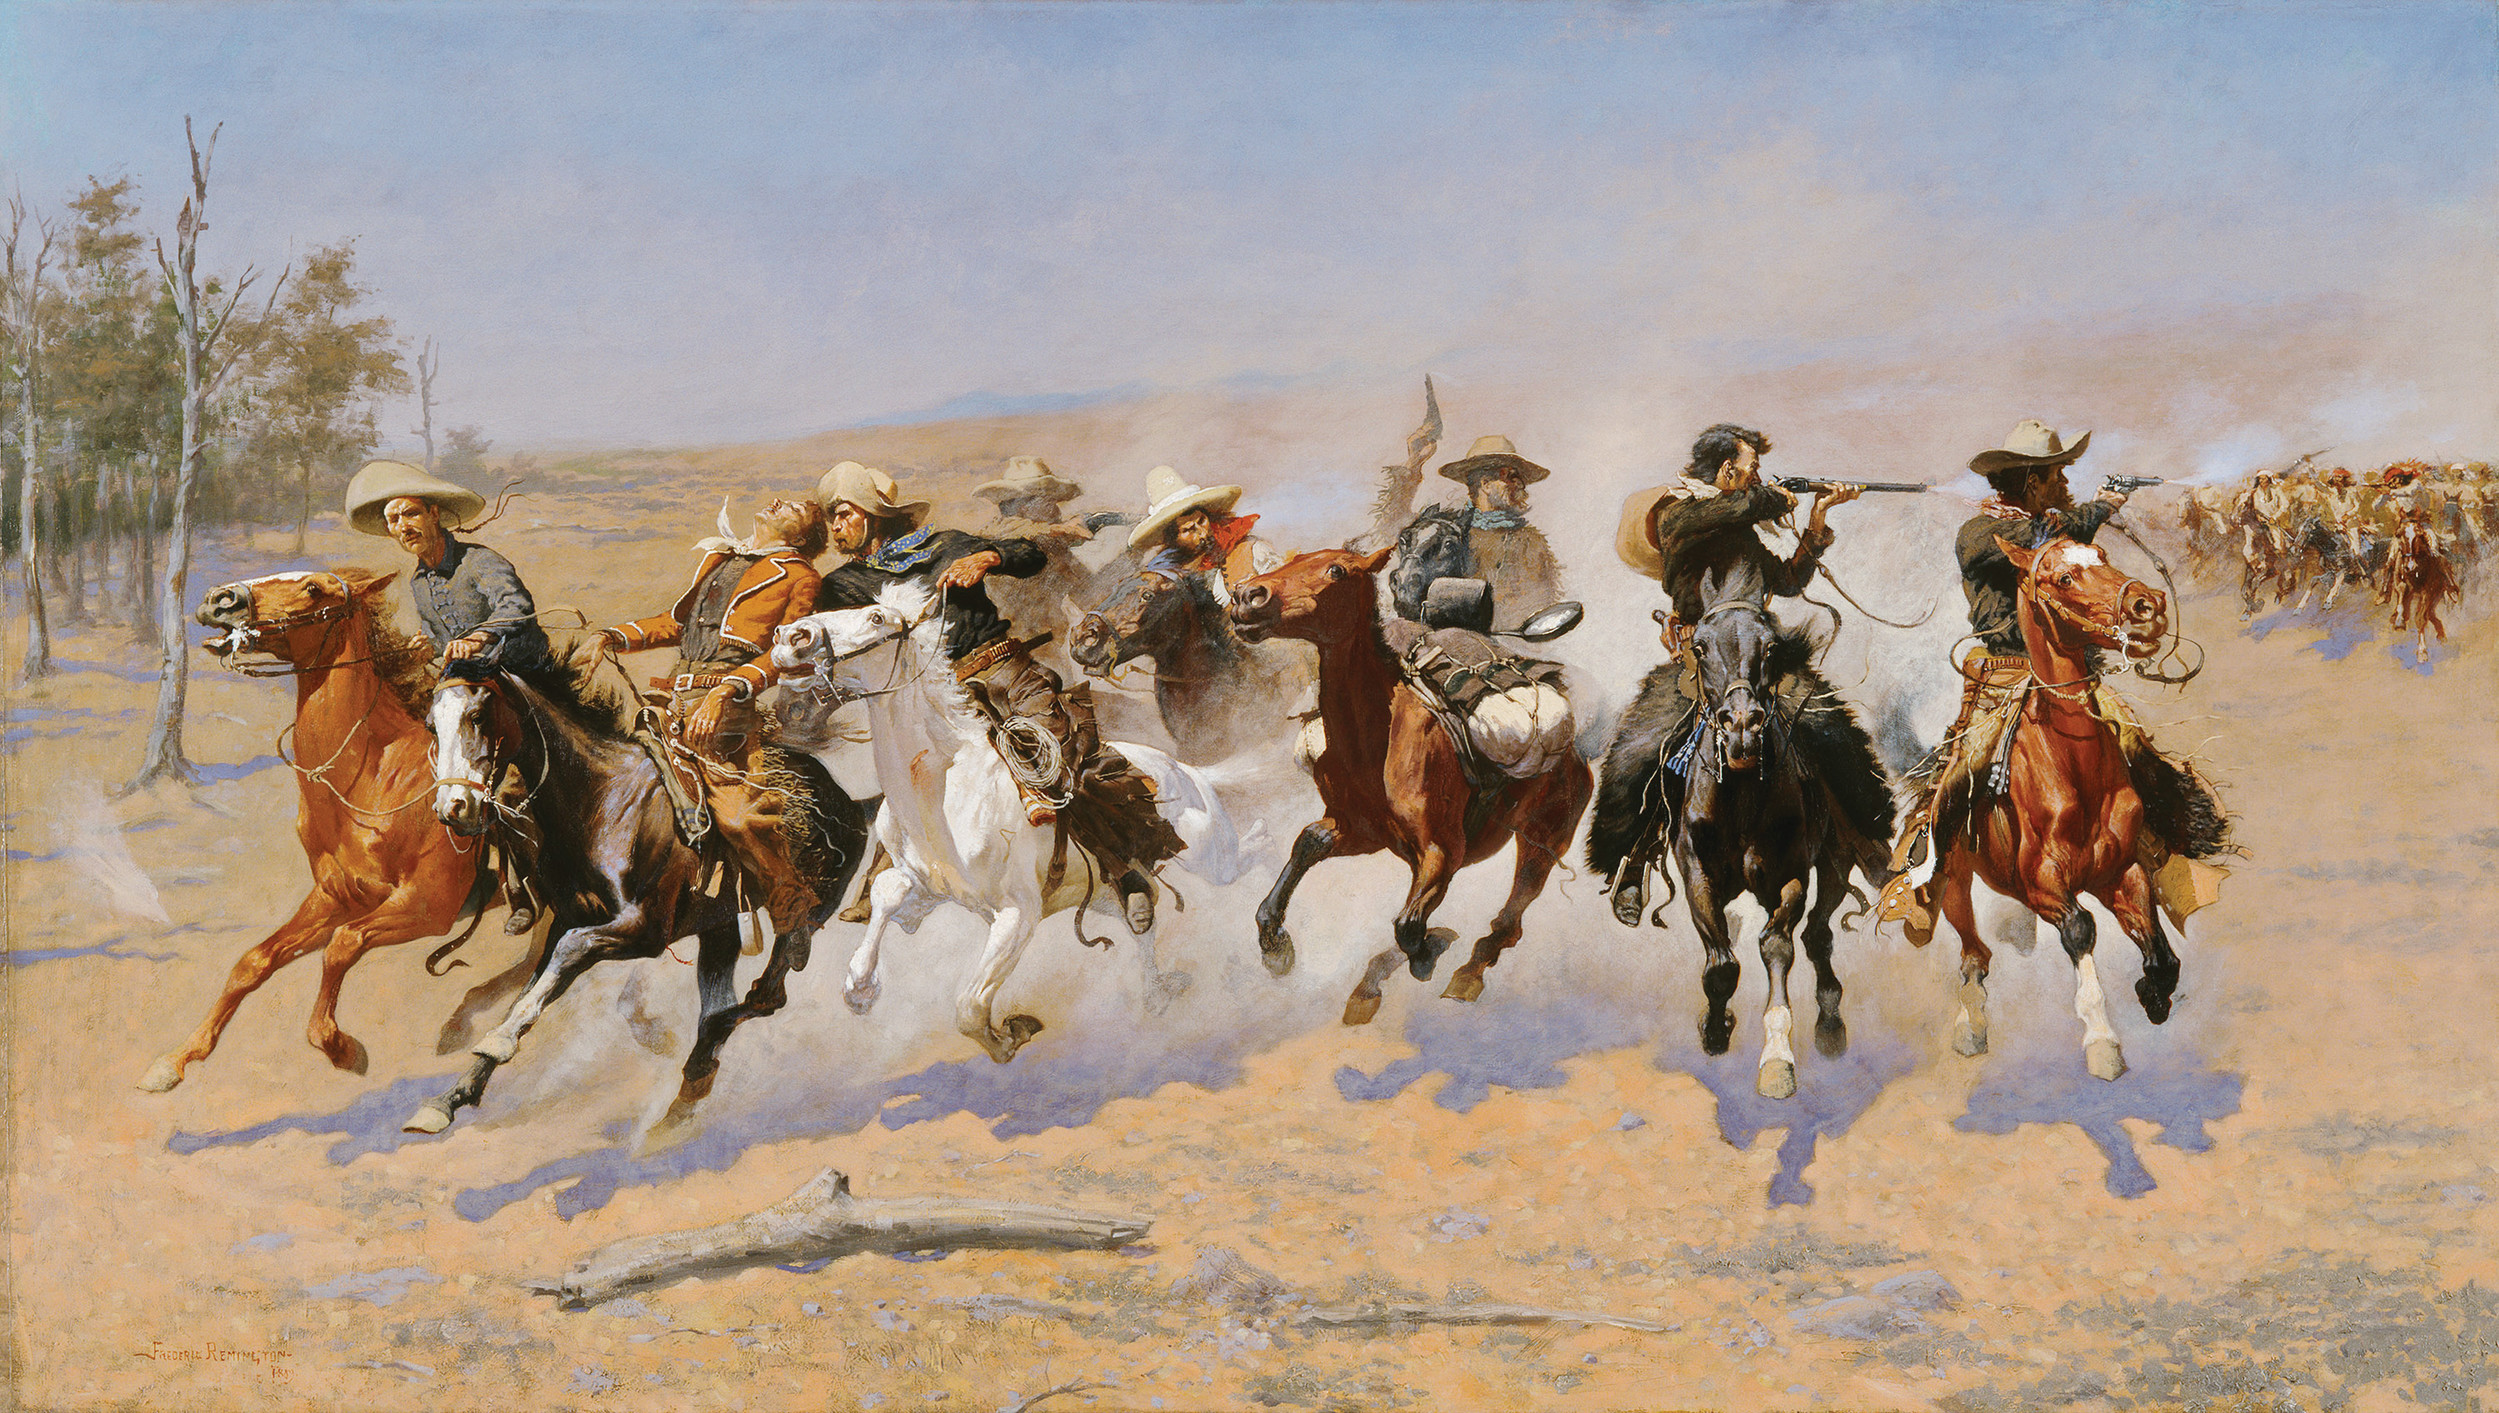 american west coursework The american west (formerly titled the west) is a limited-event american television docu-series detailing the period 1865 to 1890 in the united states the series was executive-produced by robert redford.